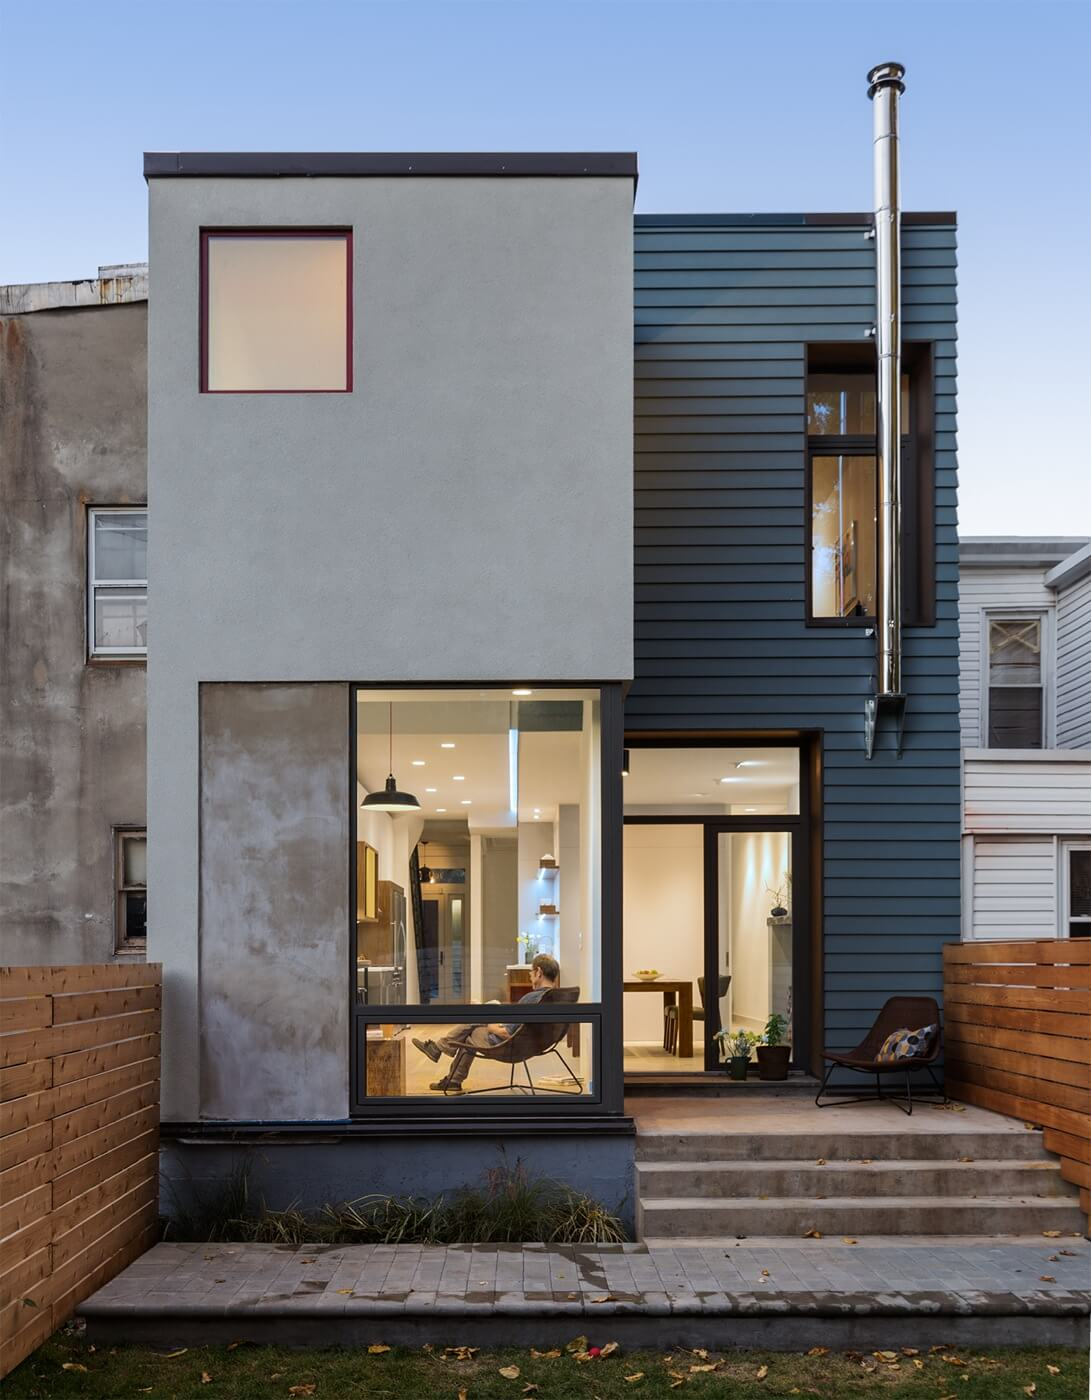 Noroof Architects, bed-stuy renovation